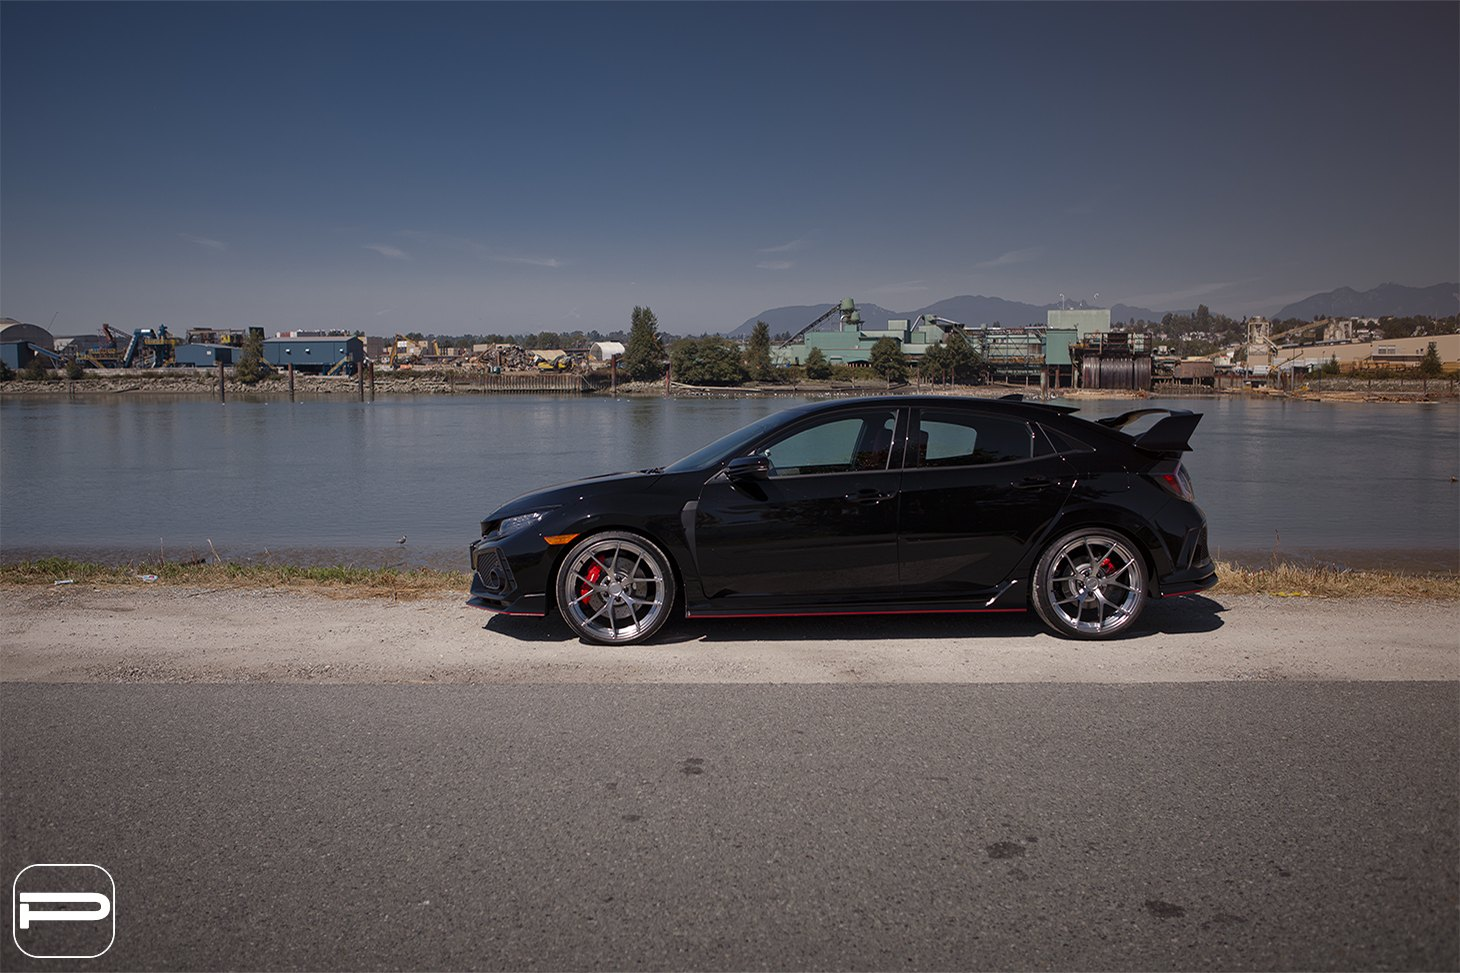 PUR Wheels with Red Brakes on Black Honda Civic - Photo by PUR Wheels